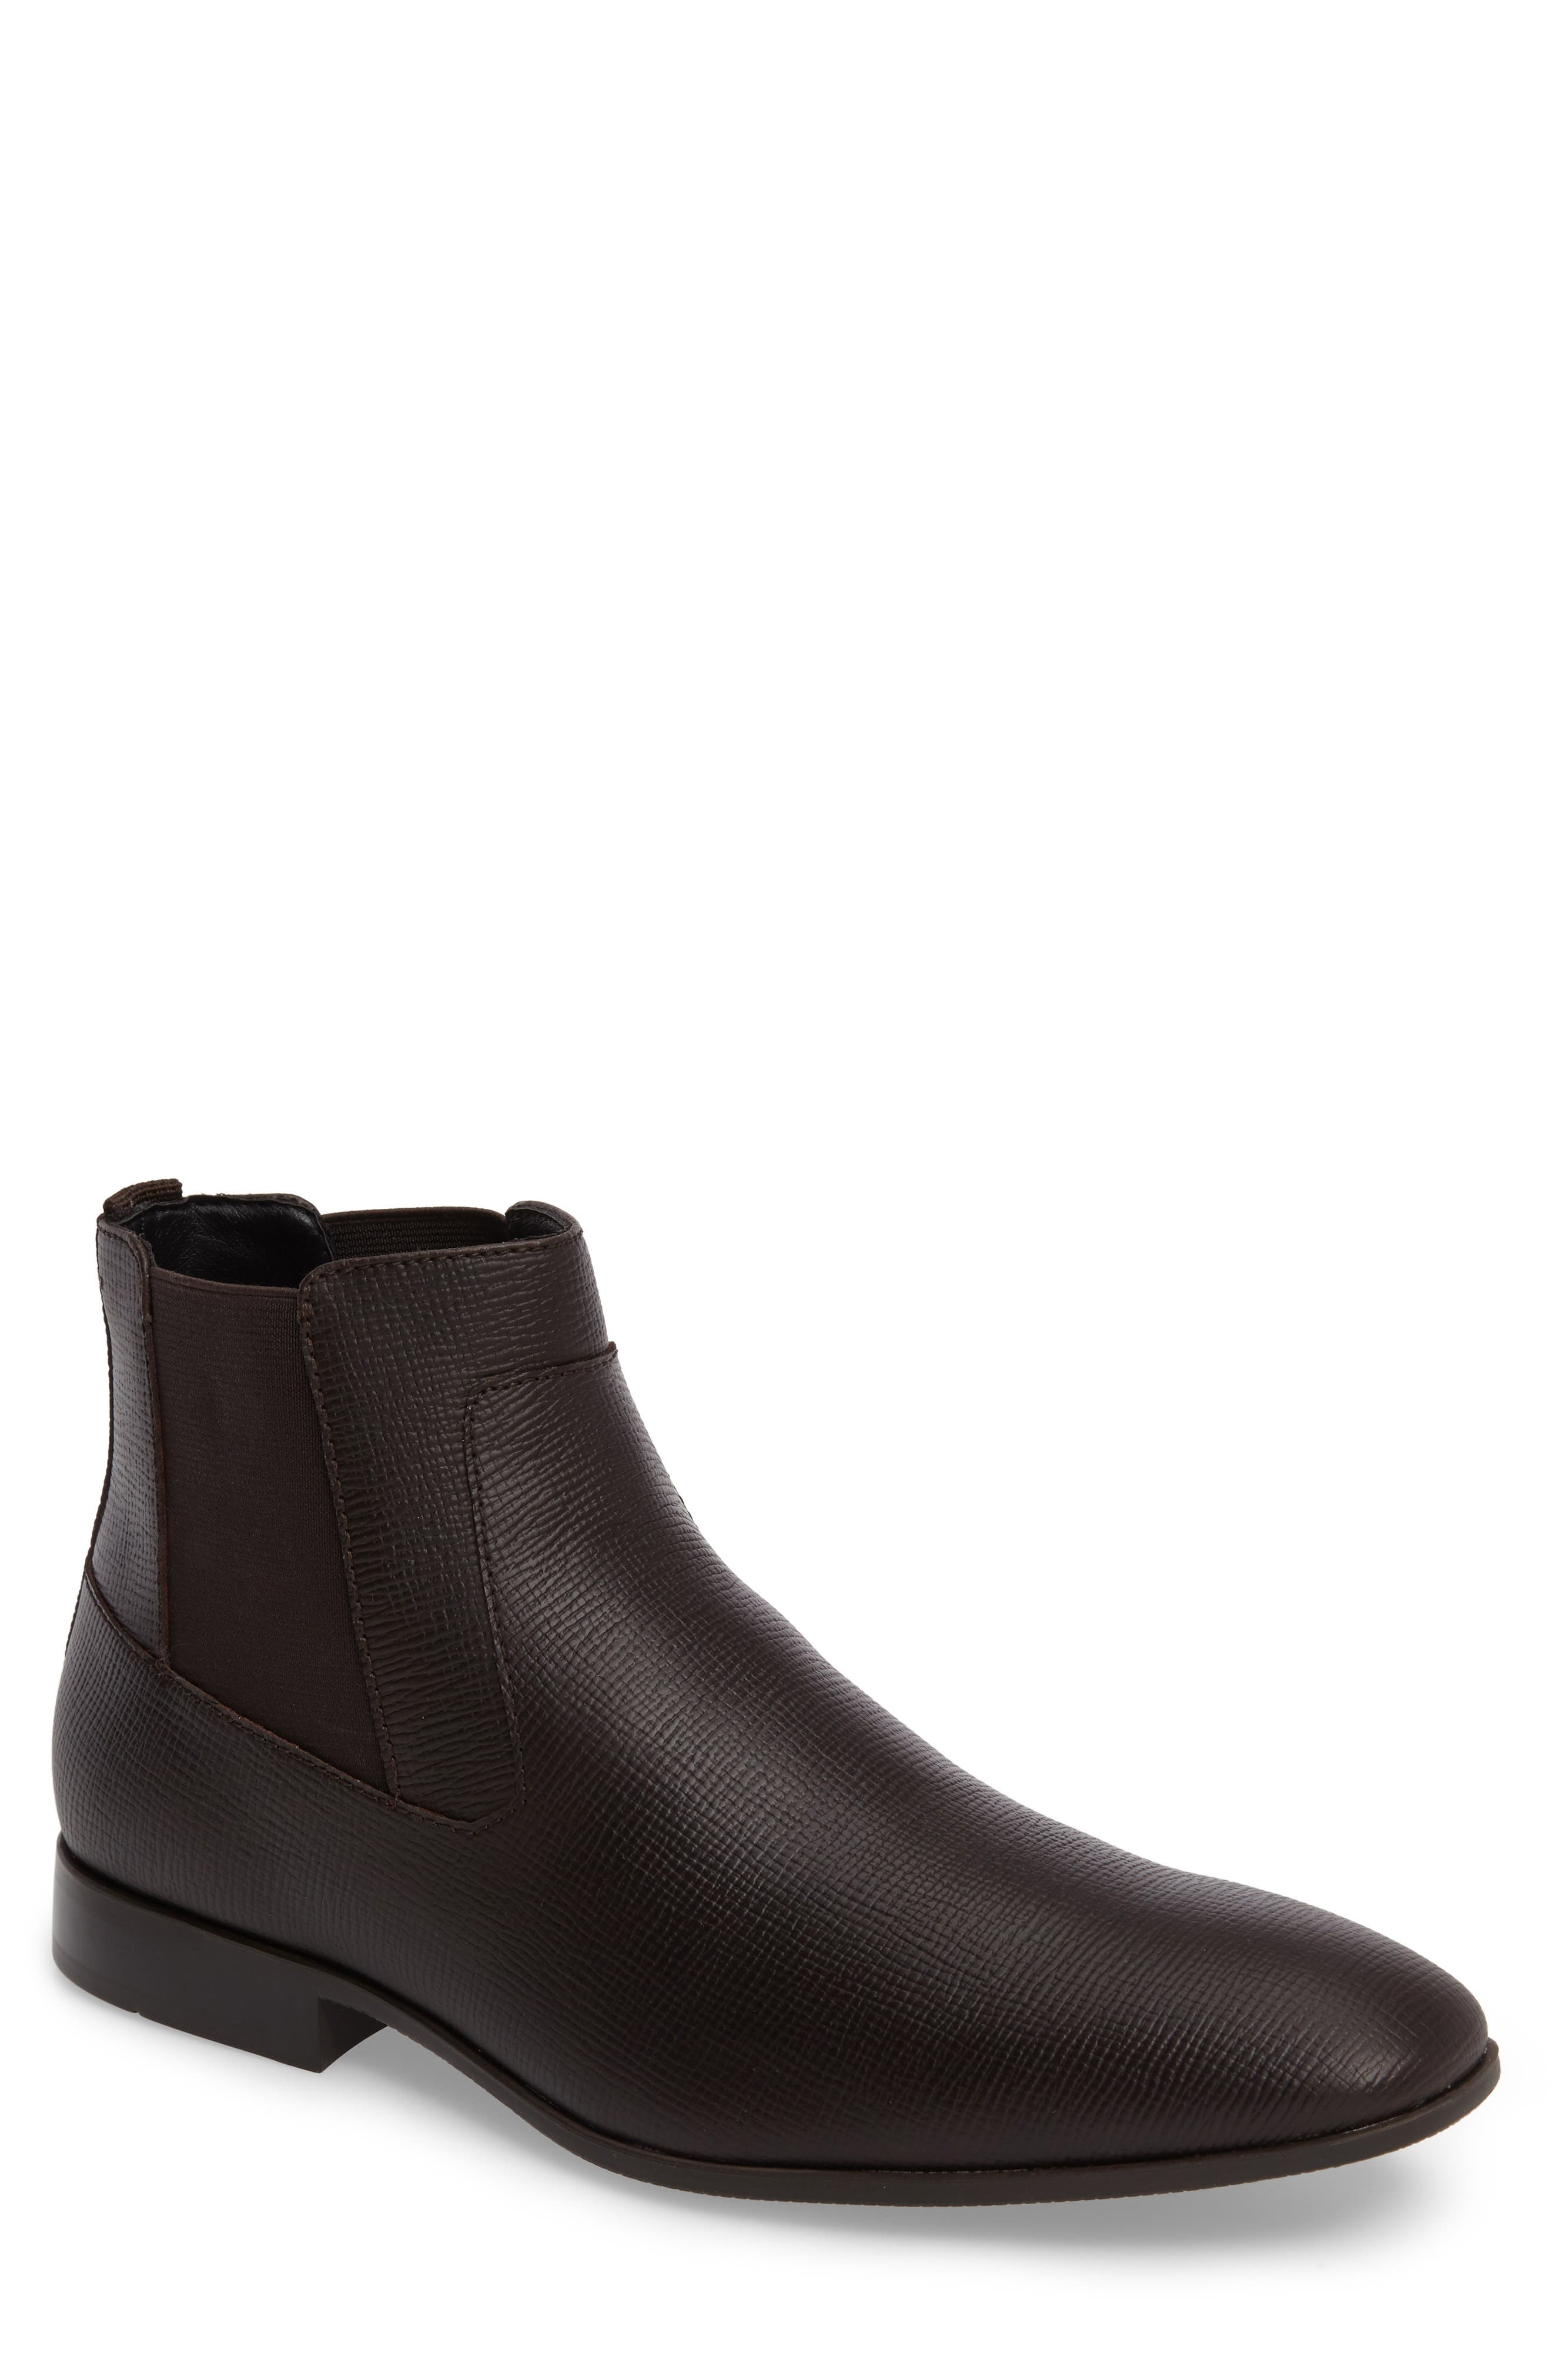 Christoff Chelsea Boot,                             Main thumbnail 1, color,                             Dark Brown Epi Leather